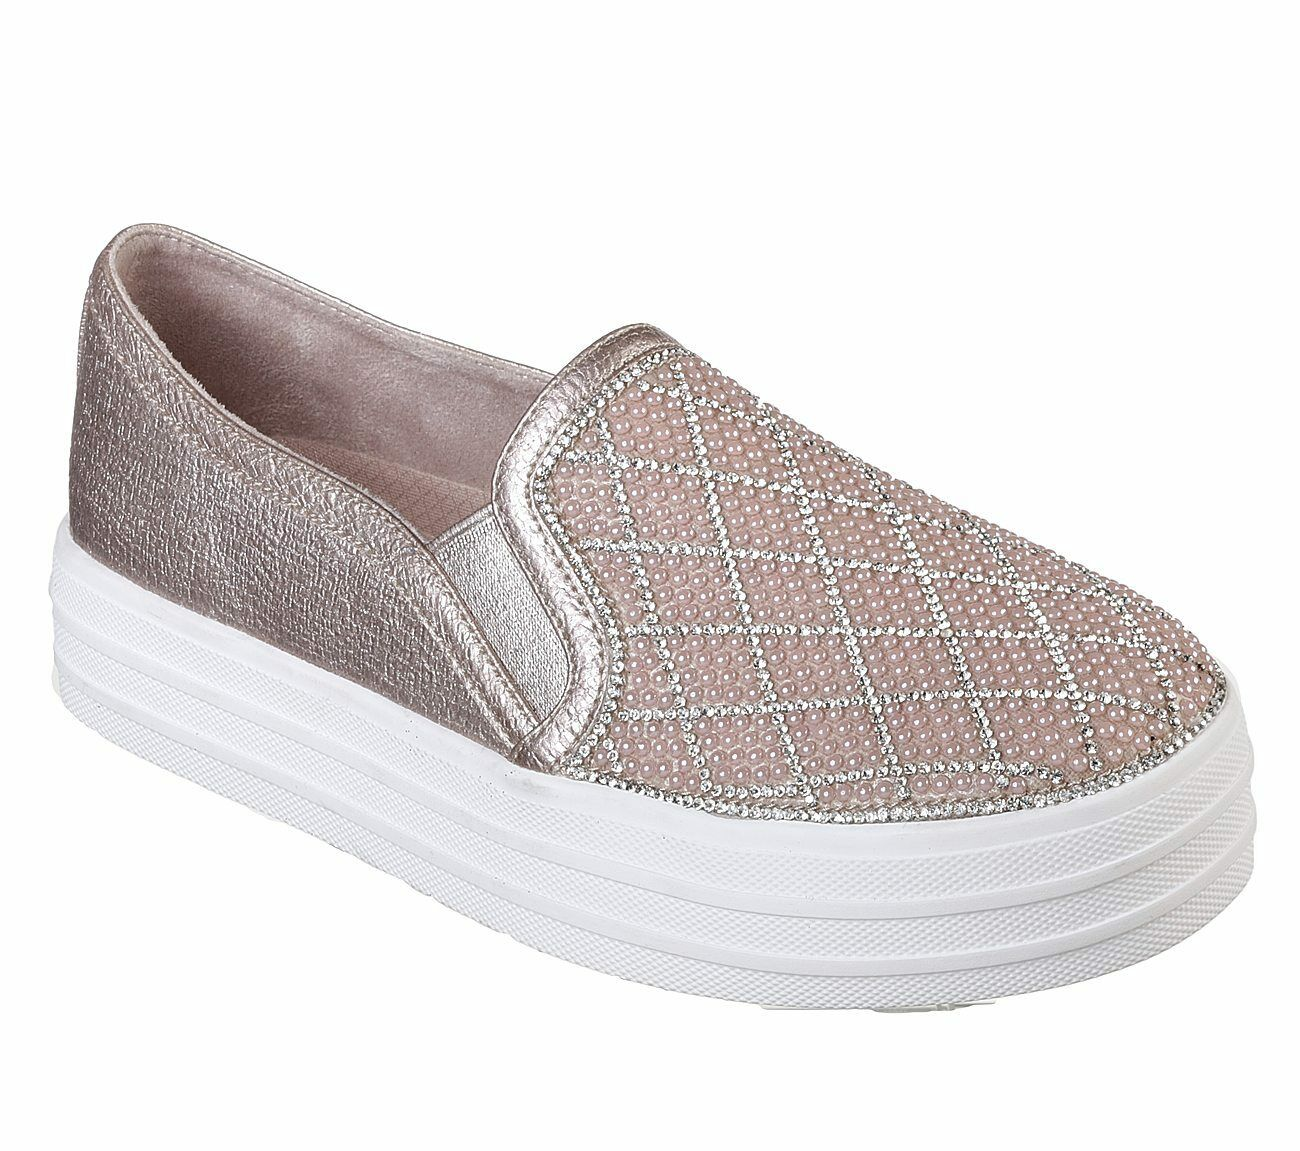 Skechers Double Up - Diamond Dancer Trainers Femme Memory Foam Jewel Chaussures 757